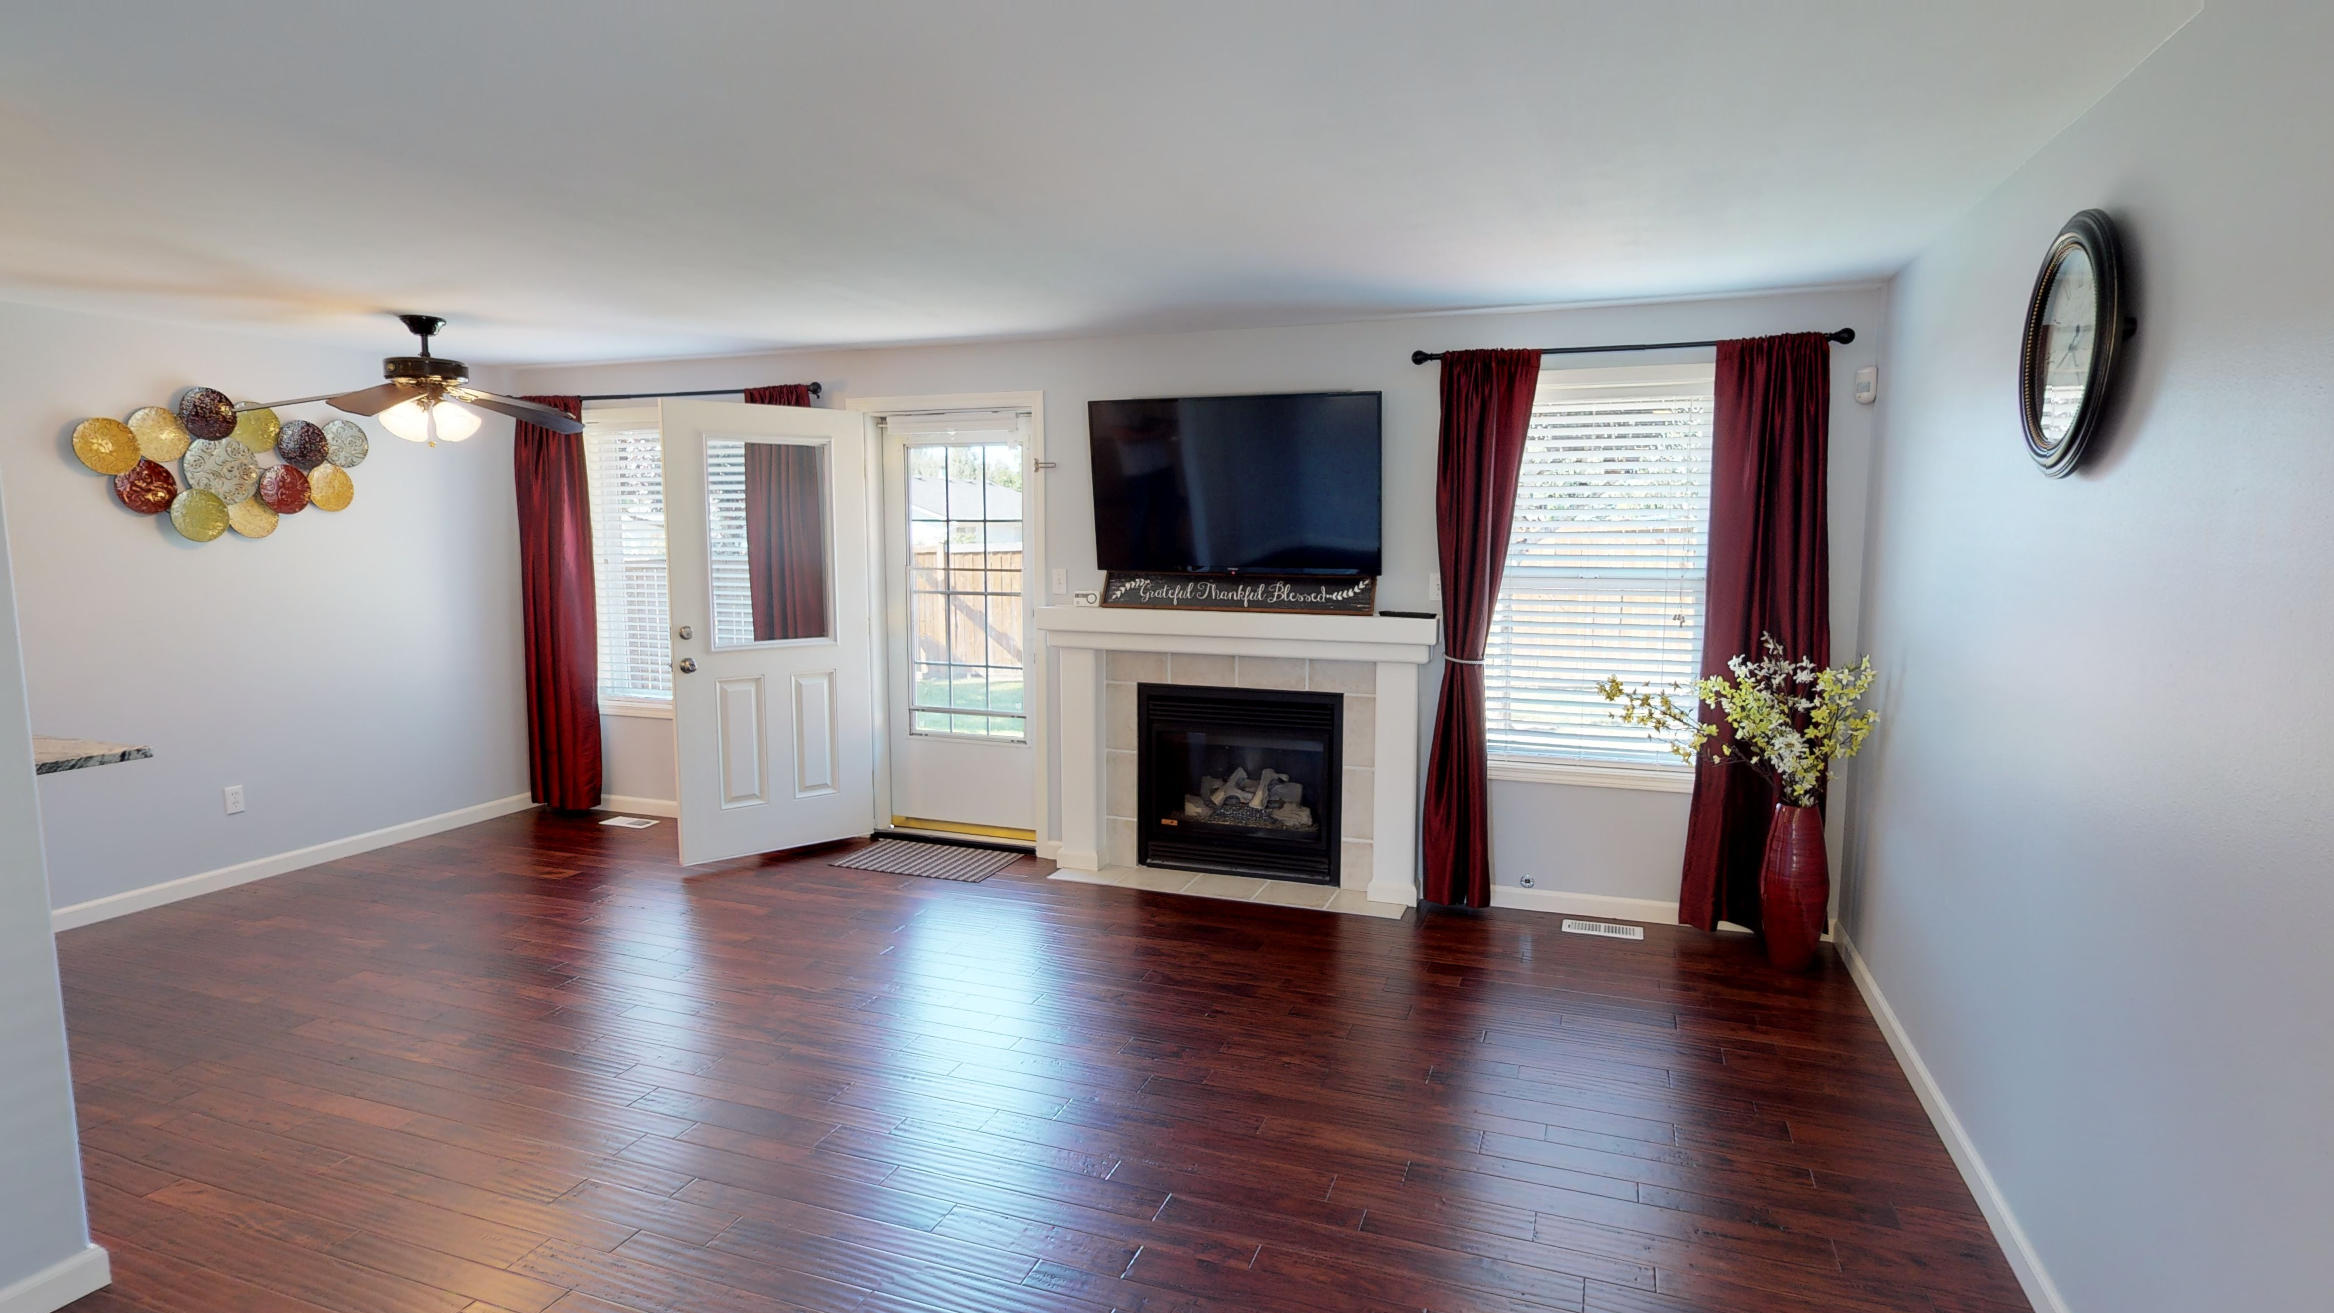 open space, great room layout, hardwood floors, gas fireplace, tile surround